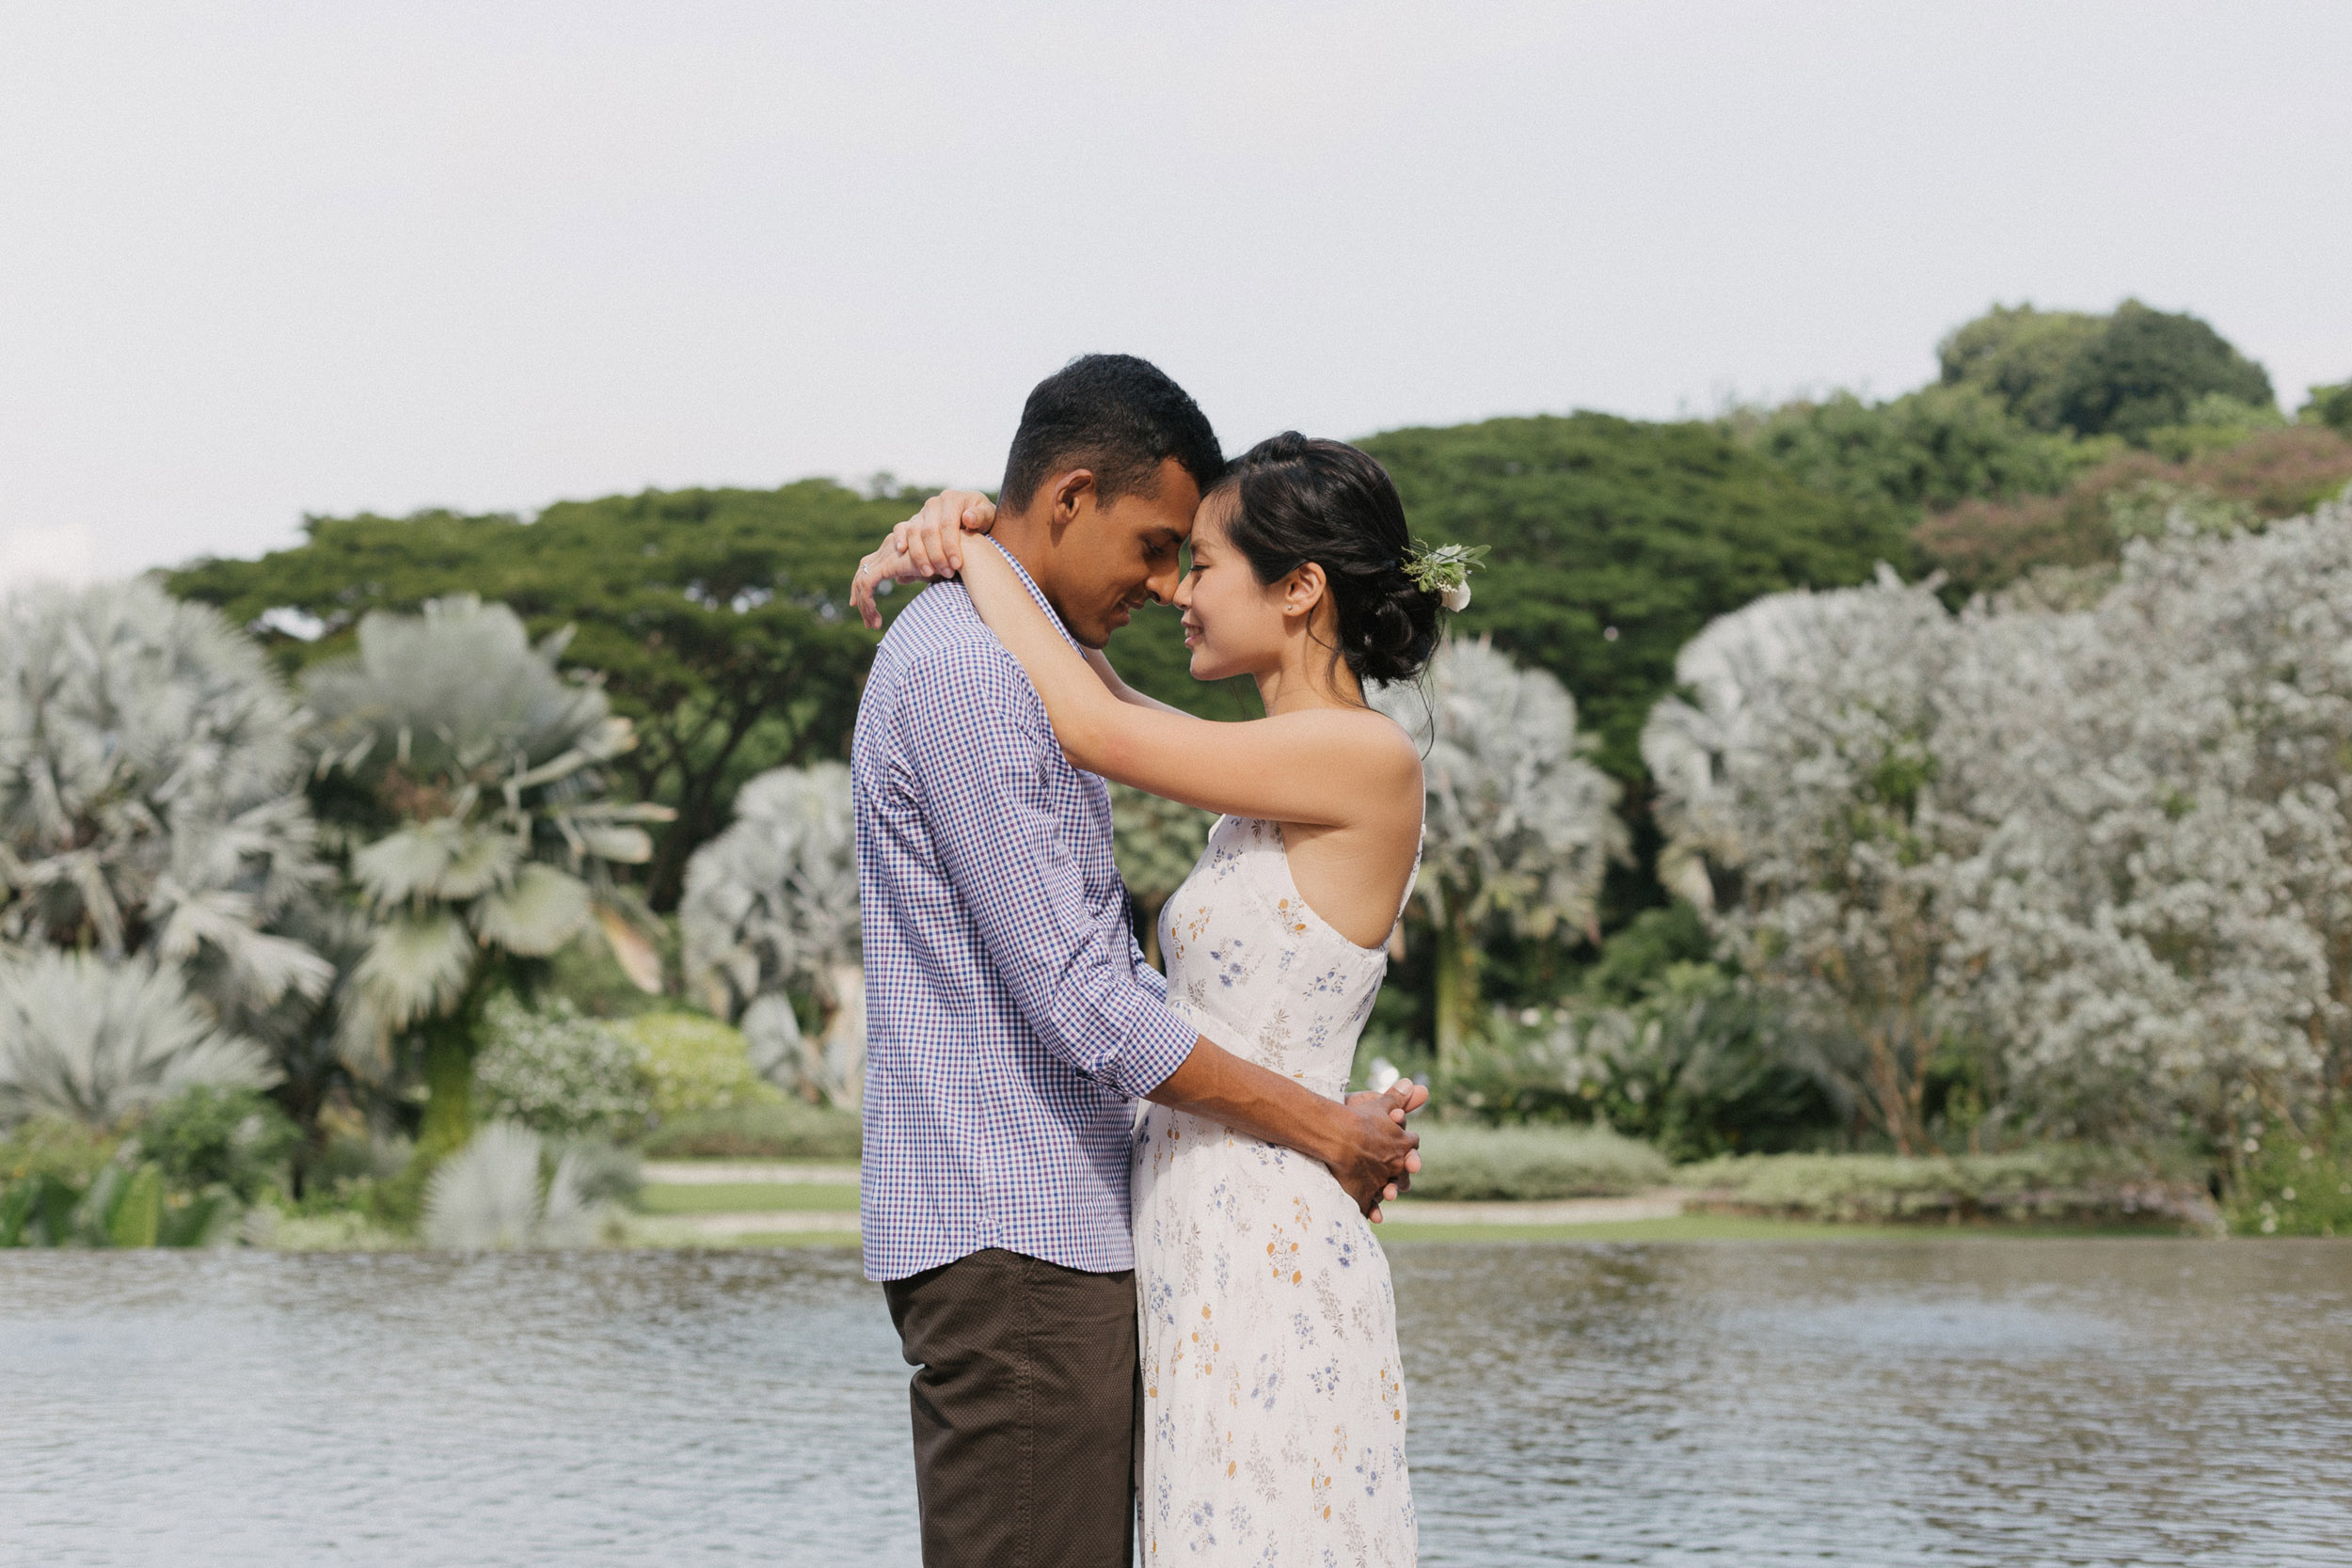 singapore-wedding-photographer-wemadethese-suriya-xinqi-18.jpg